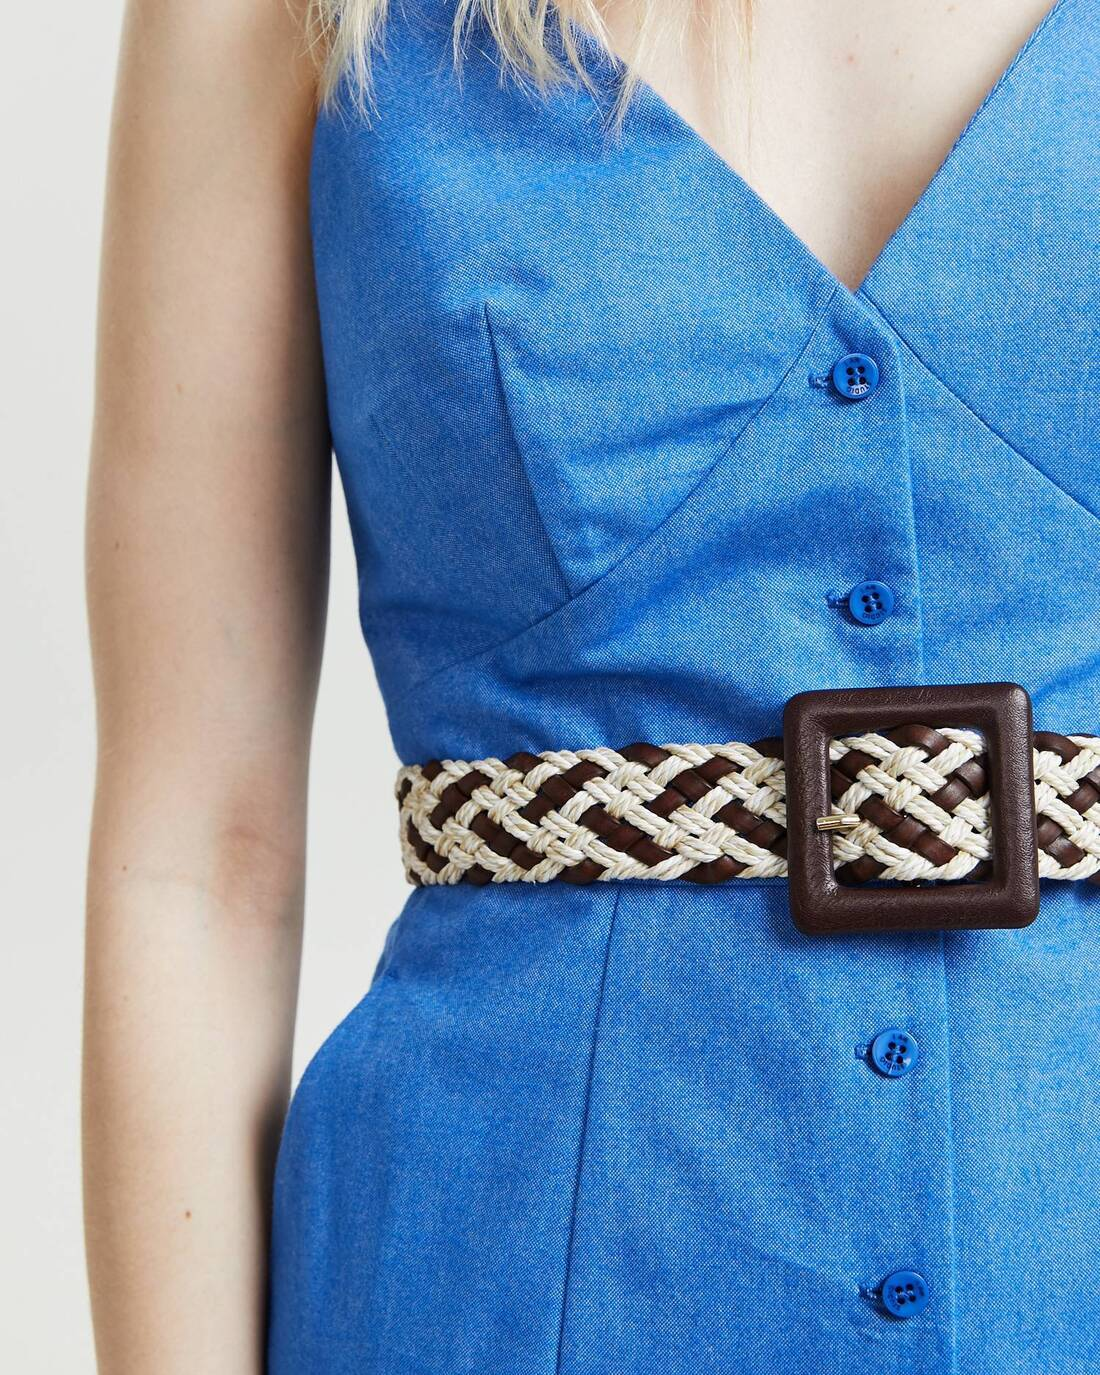 woven belt with leather buckle